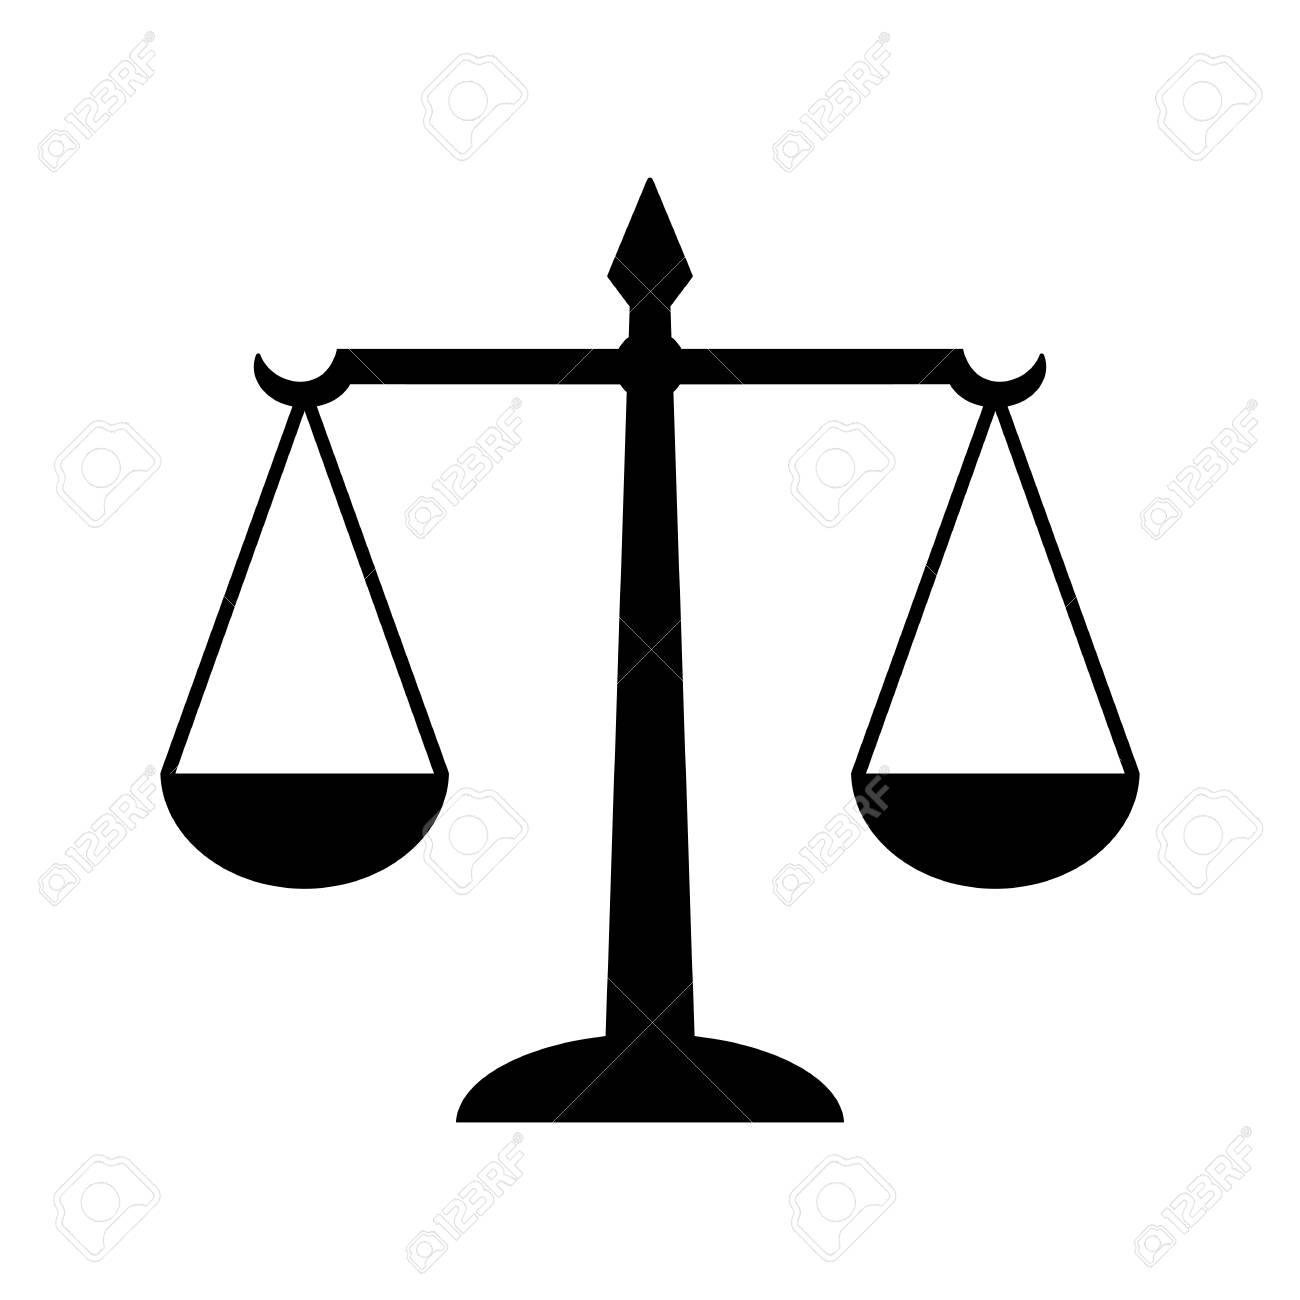 2121 Justice free clipart.